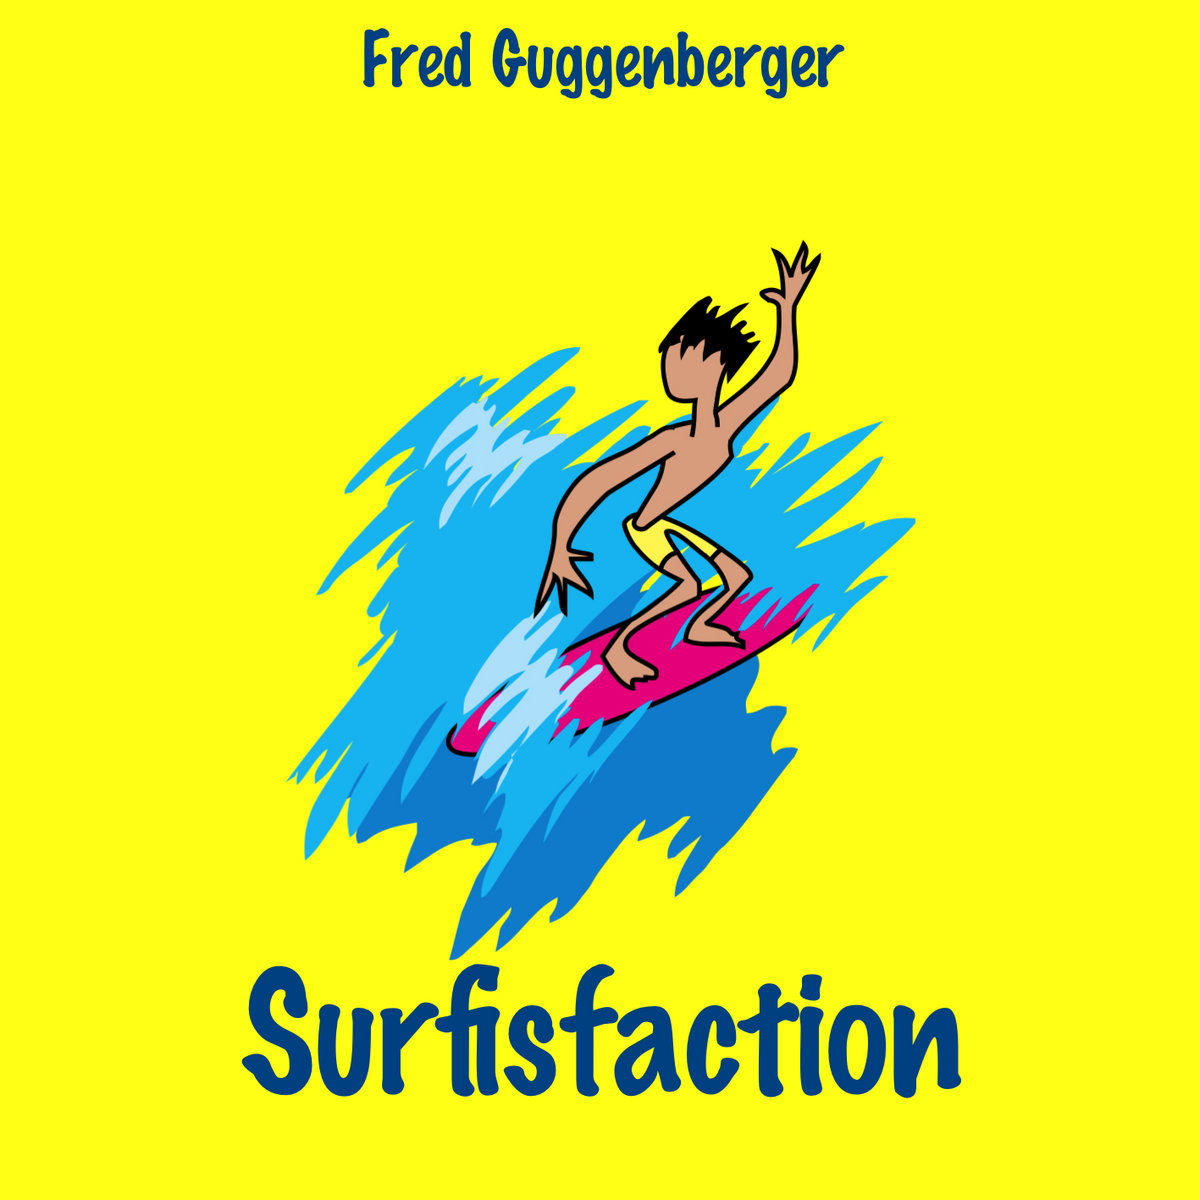 Surfisfaction by Fred Guggenberger